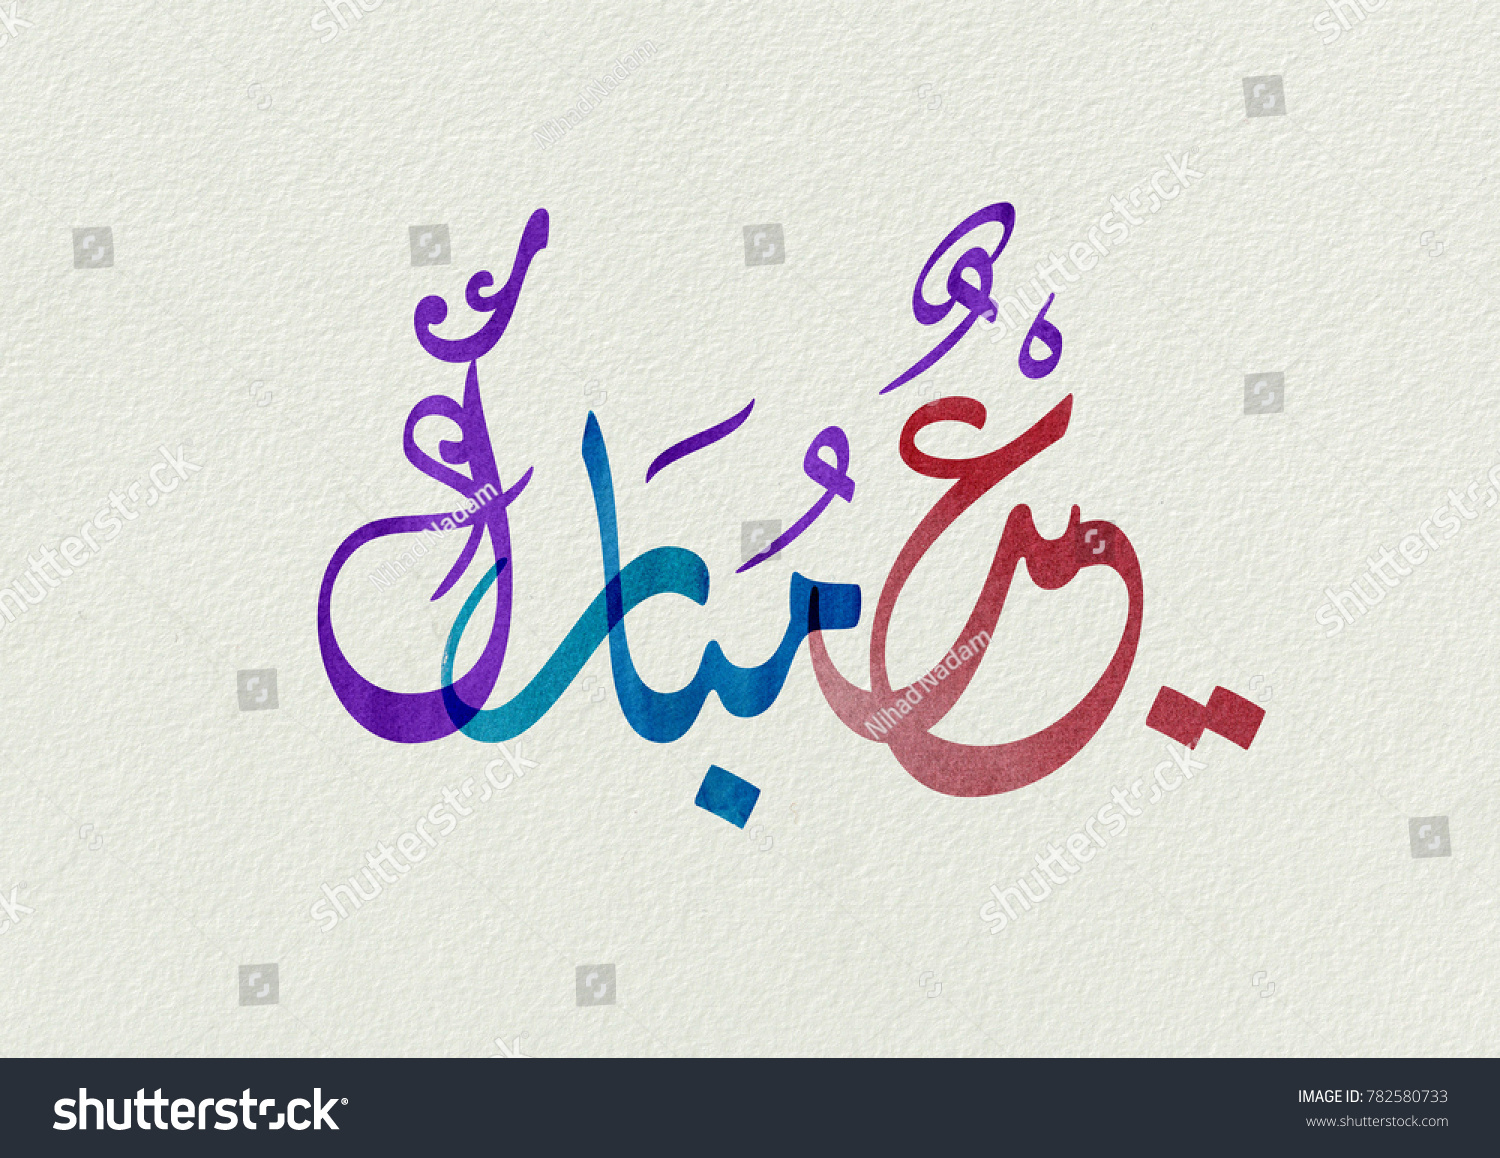 Blessed eid arabic eid mubarak greeting stock illustration blessed eid in arabic eid mubarak greeting cards watercolor arabic calligraphy kristyandbryce Image collections